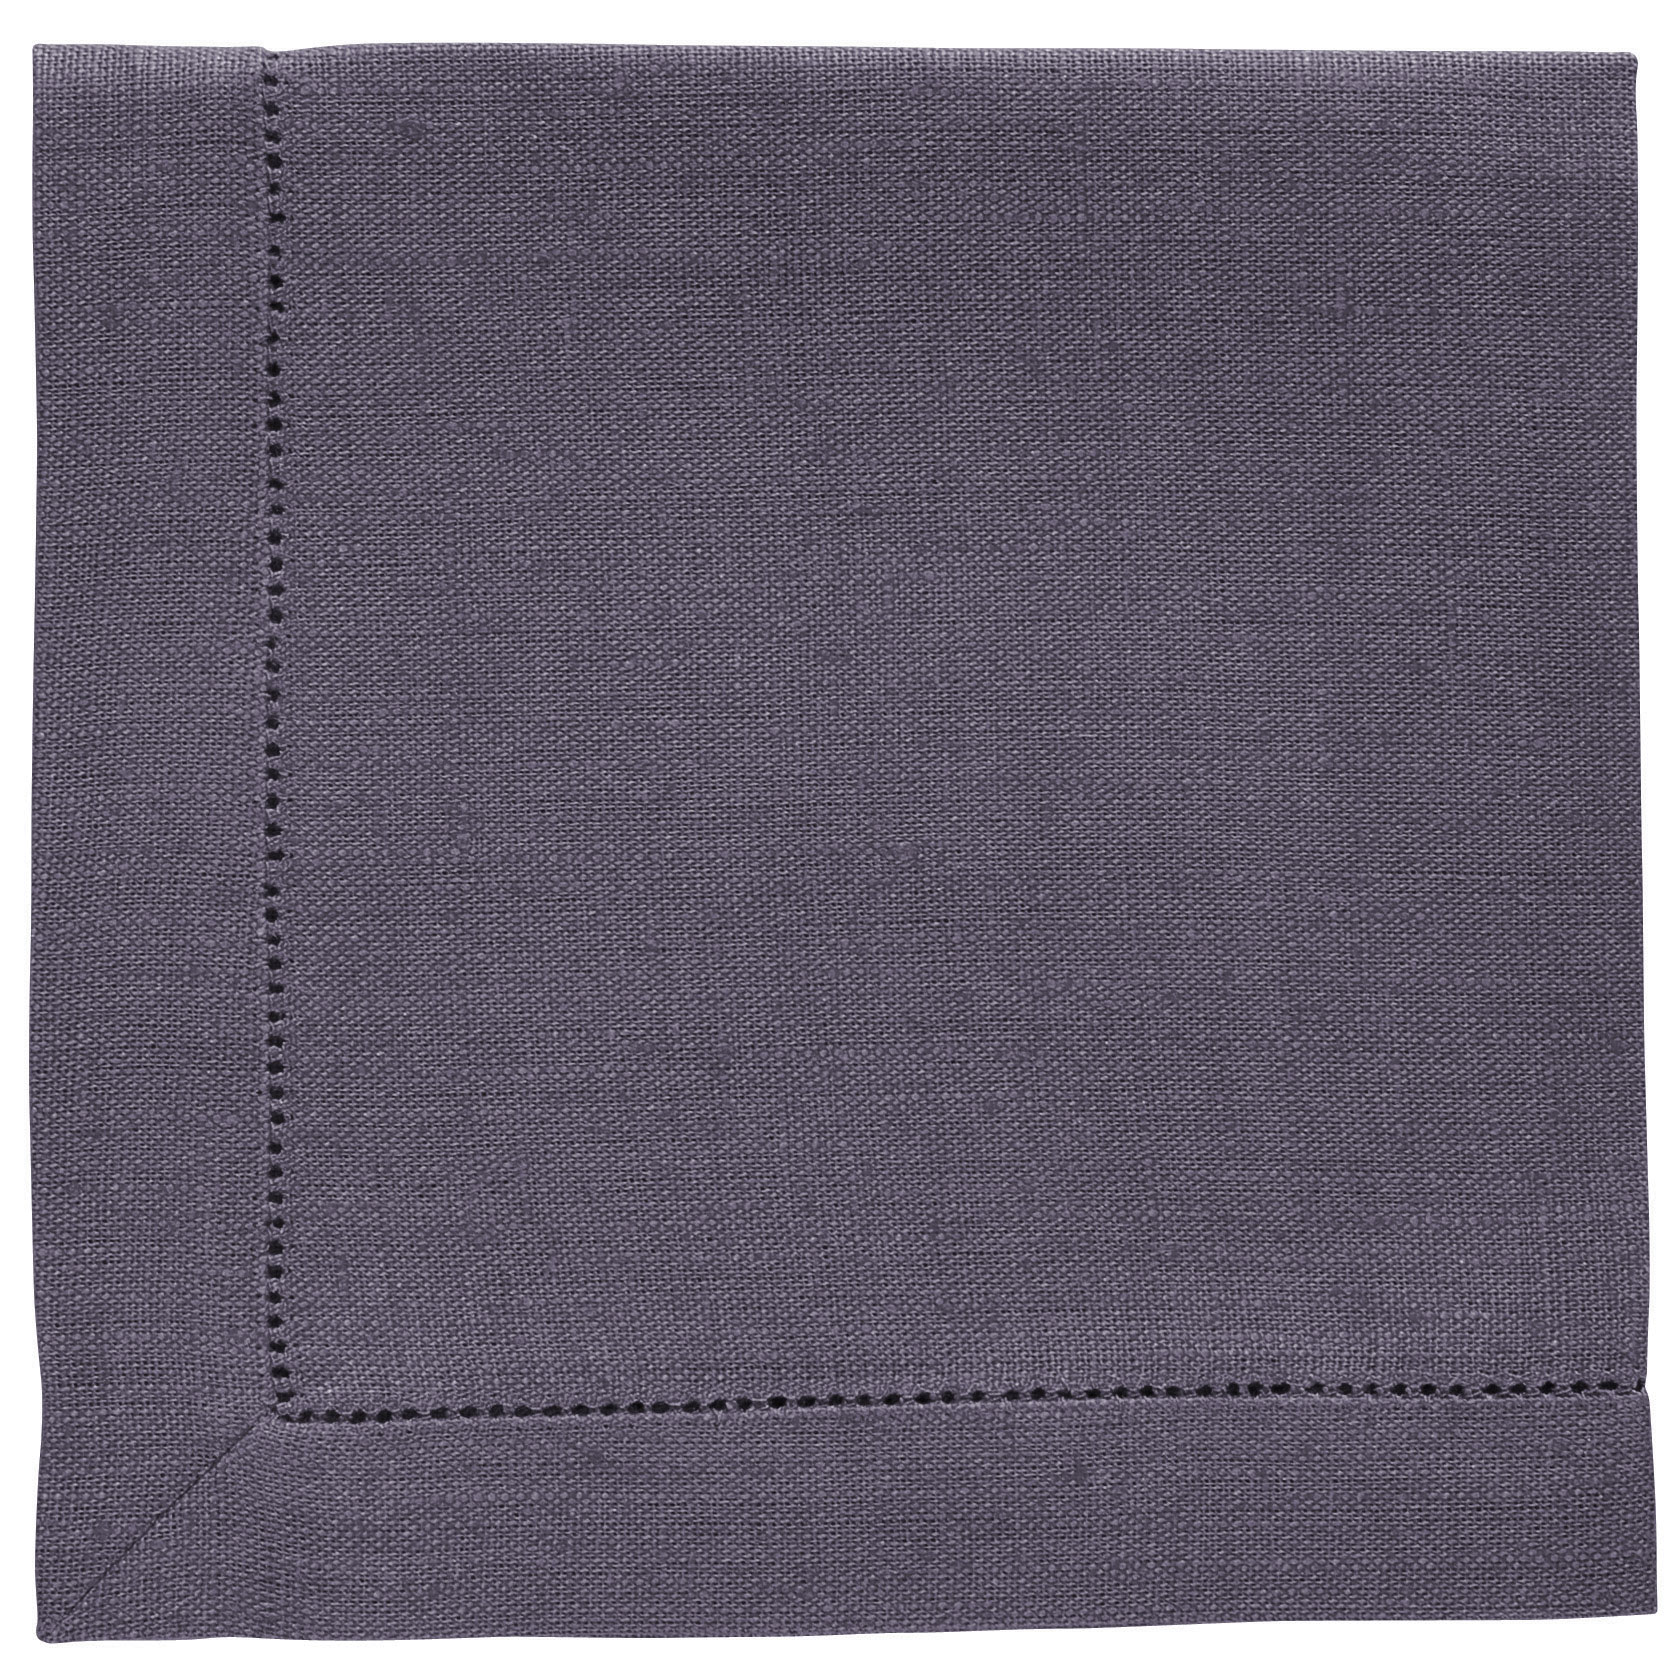 NAPKIN <br />purple sage